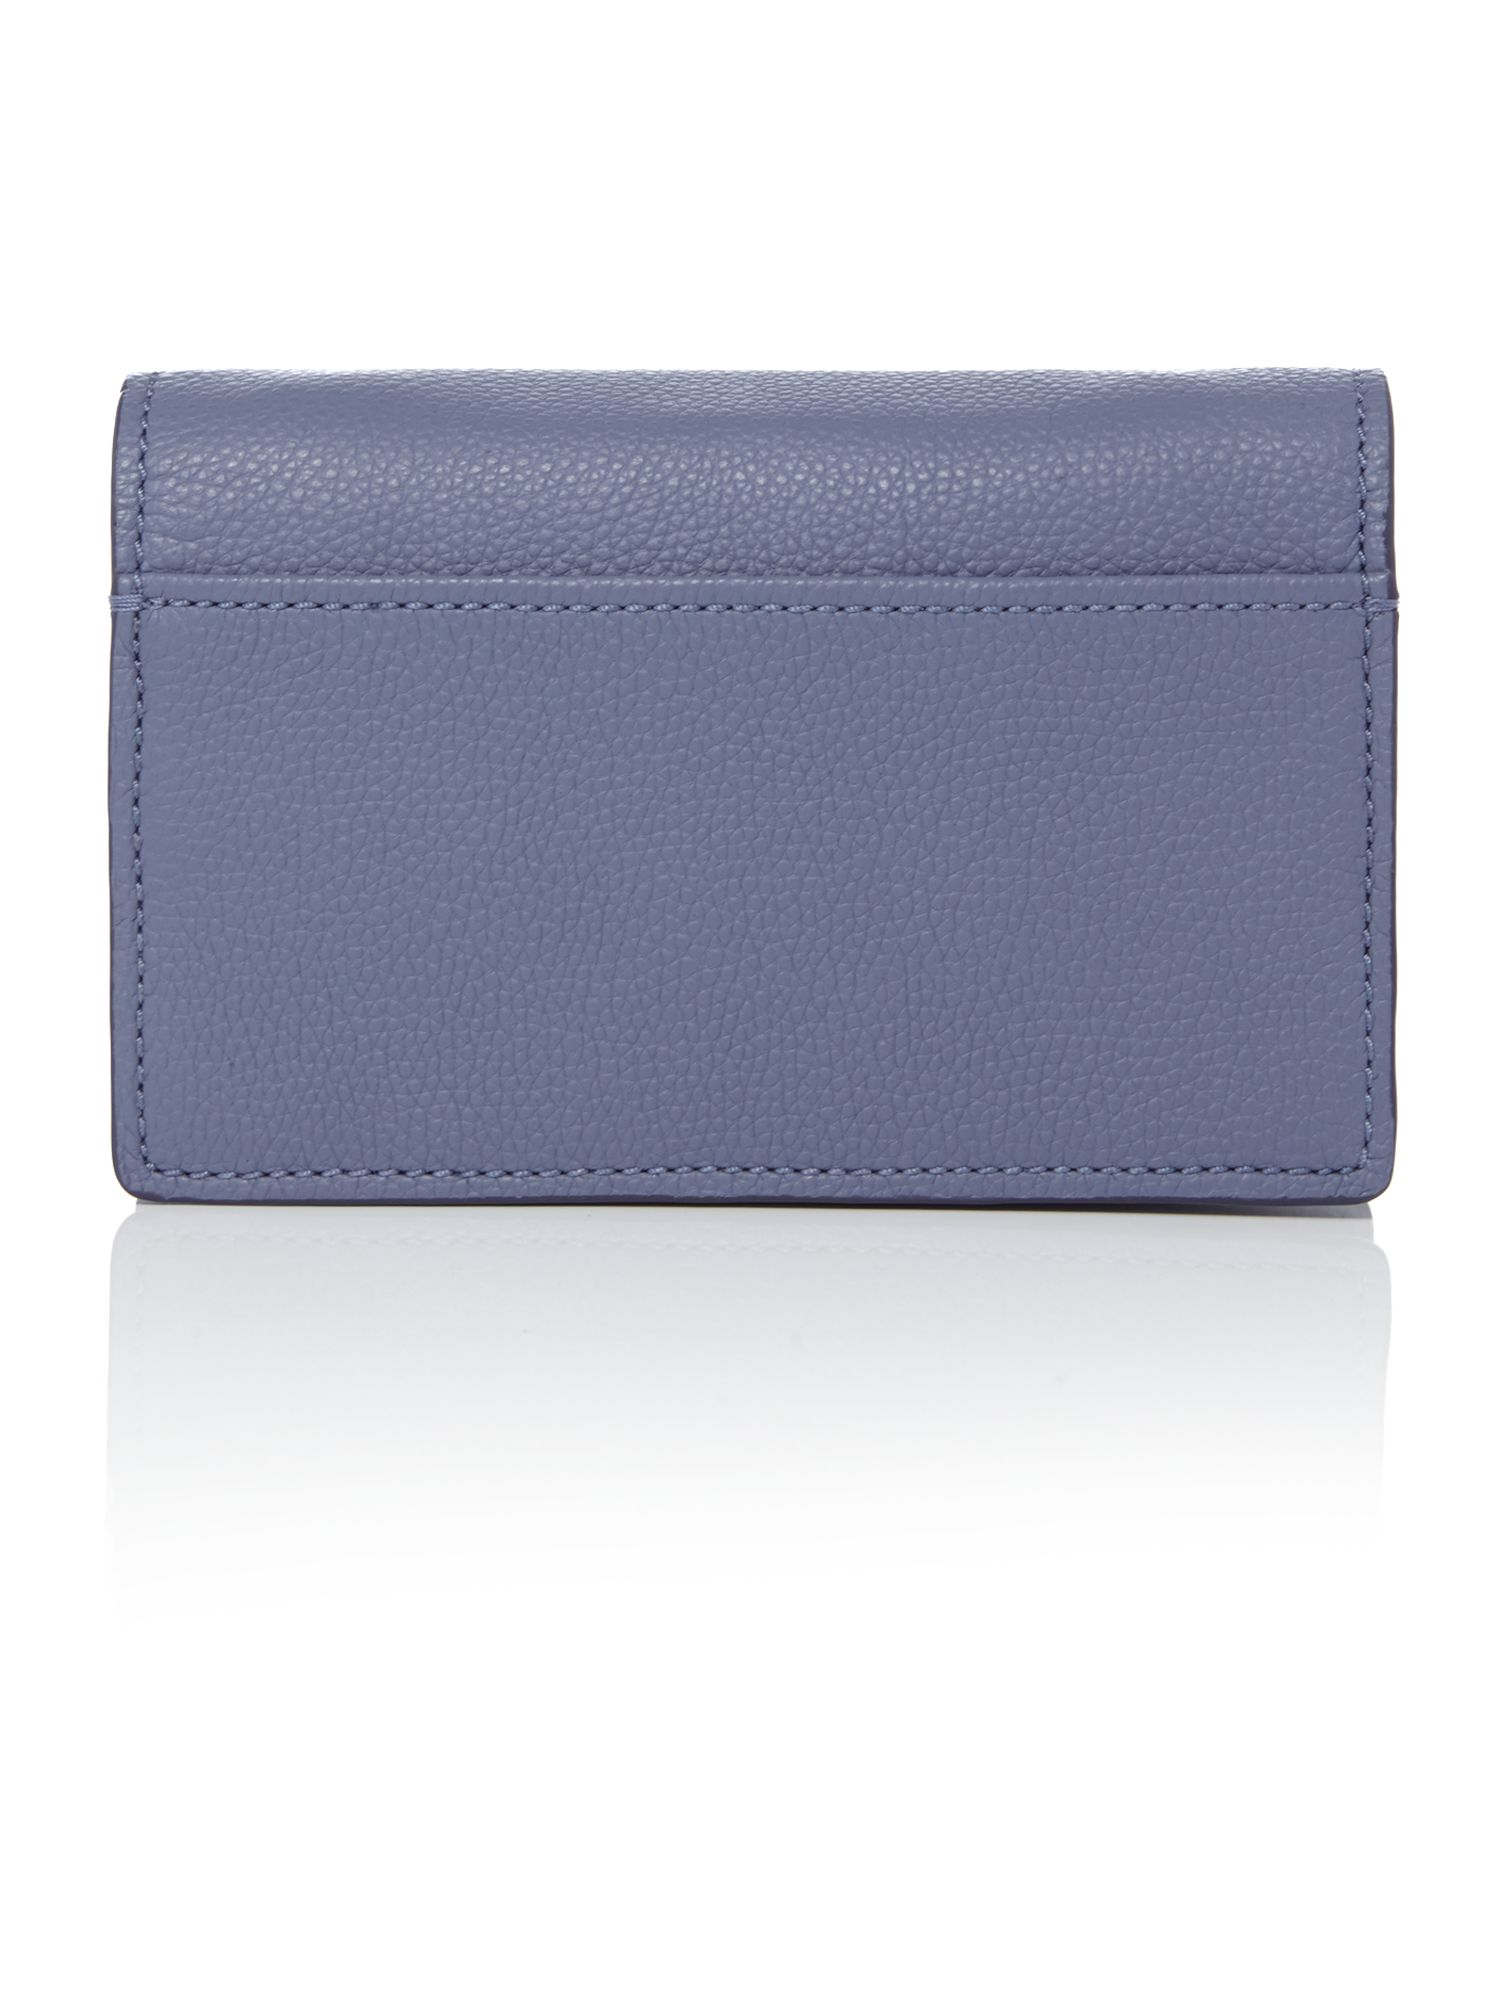 Kate Spade Orchard Street Small Flapover Cross Body Bag in Blue